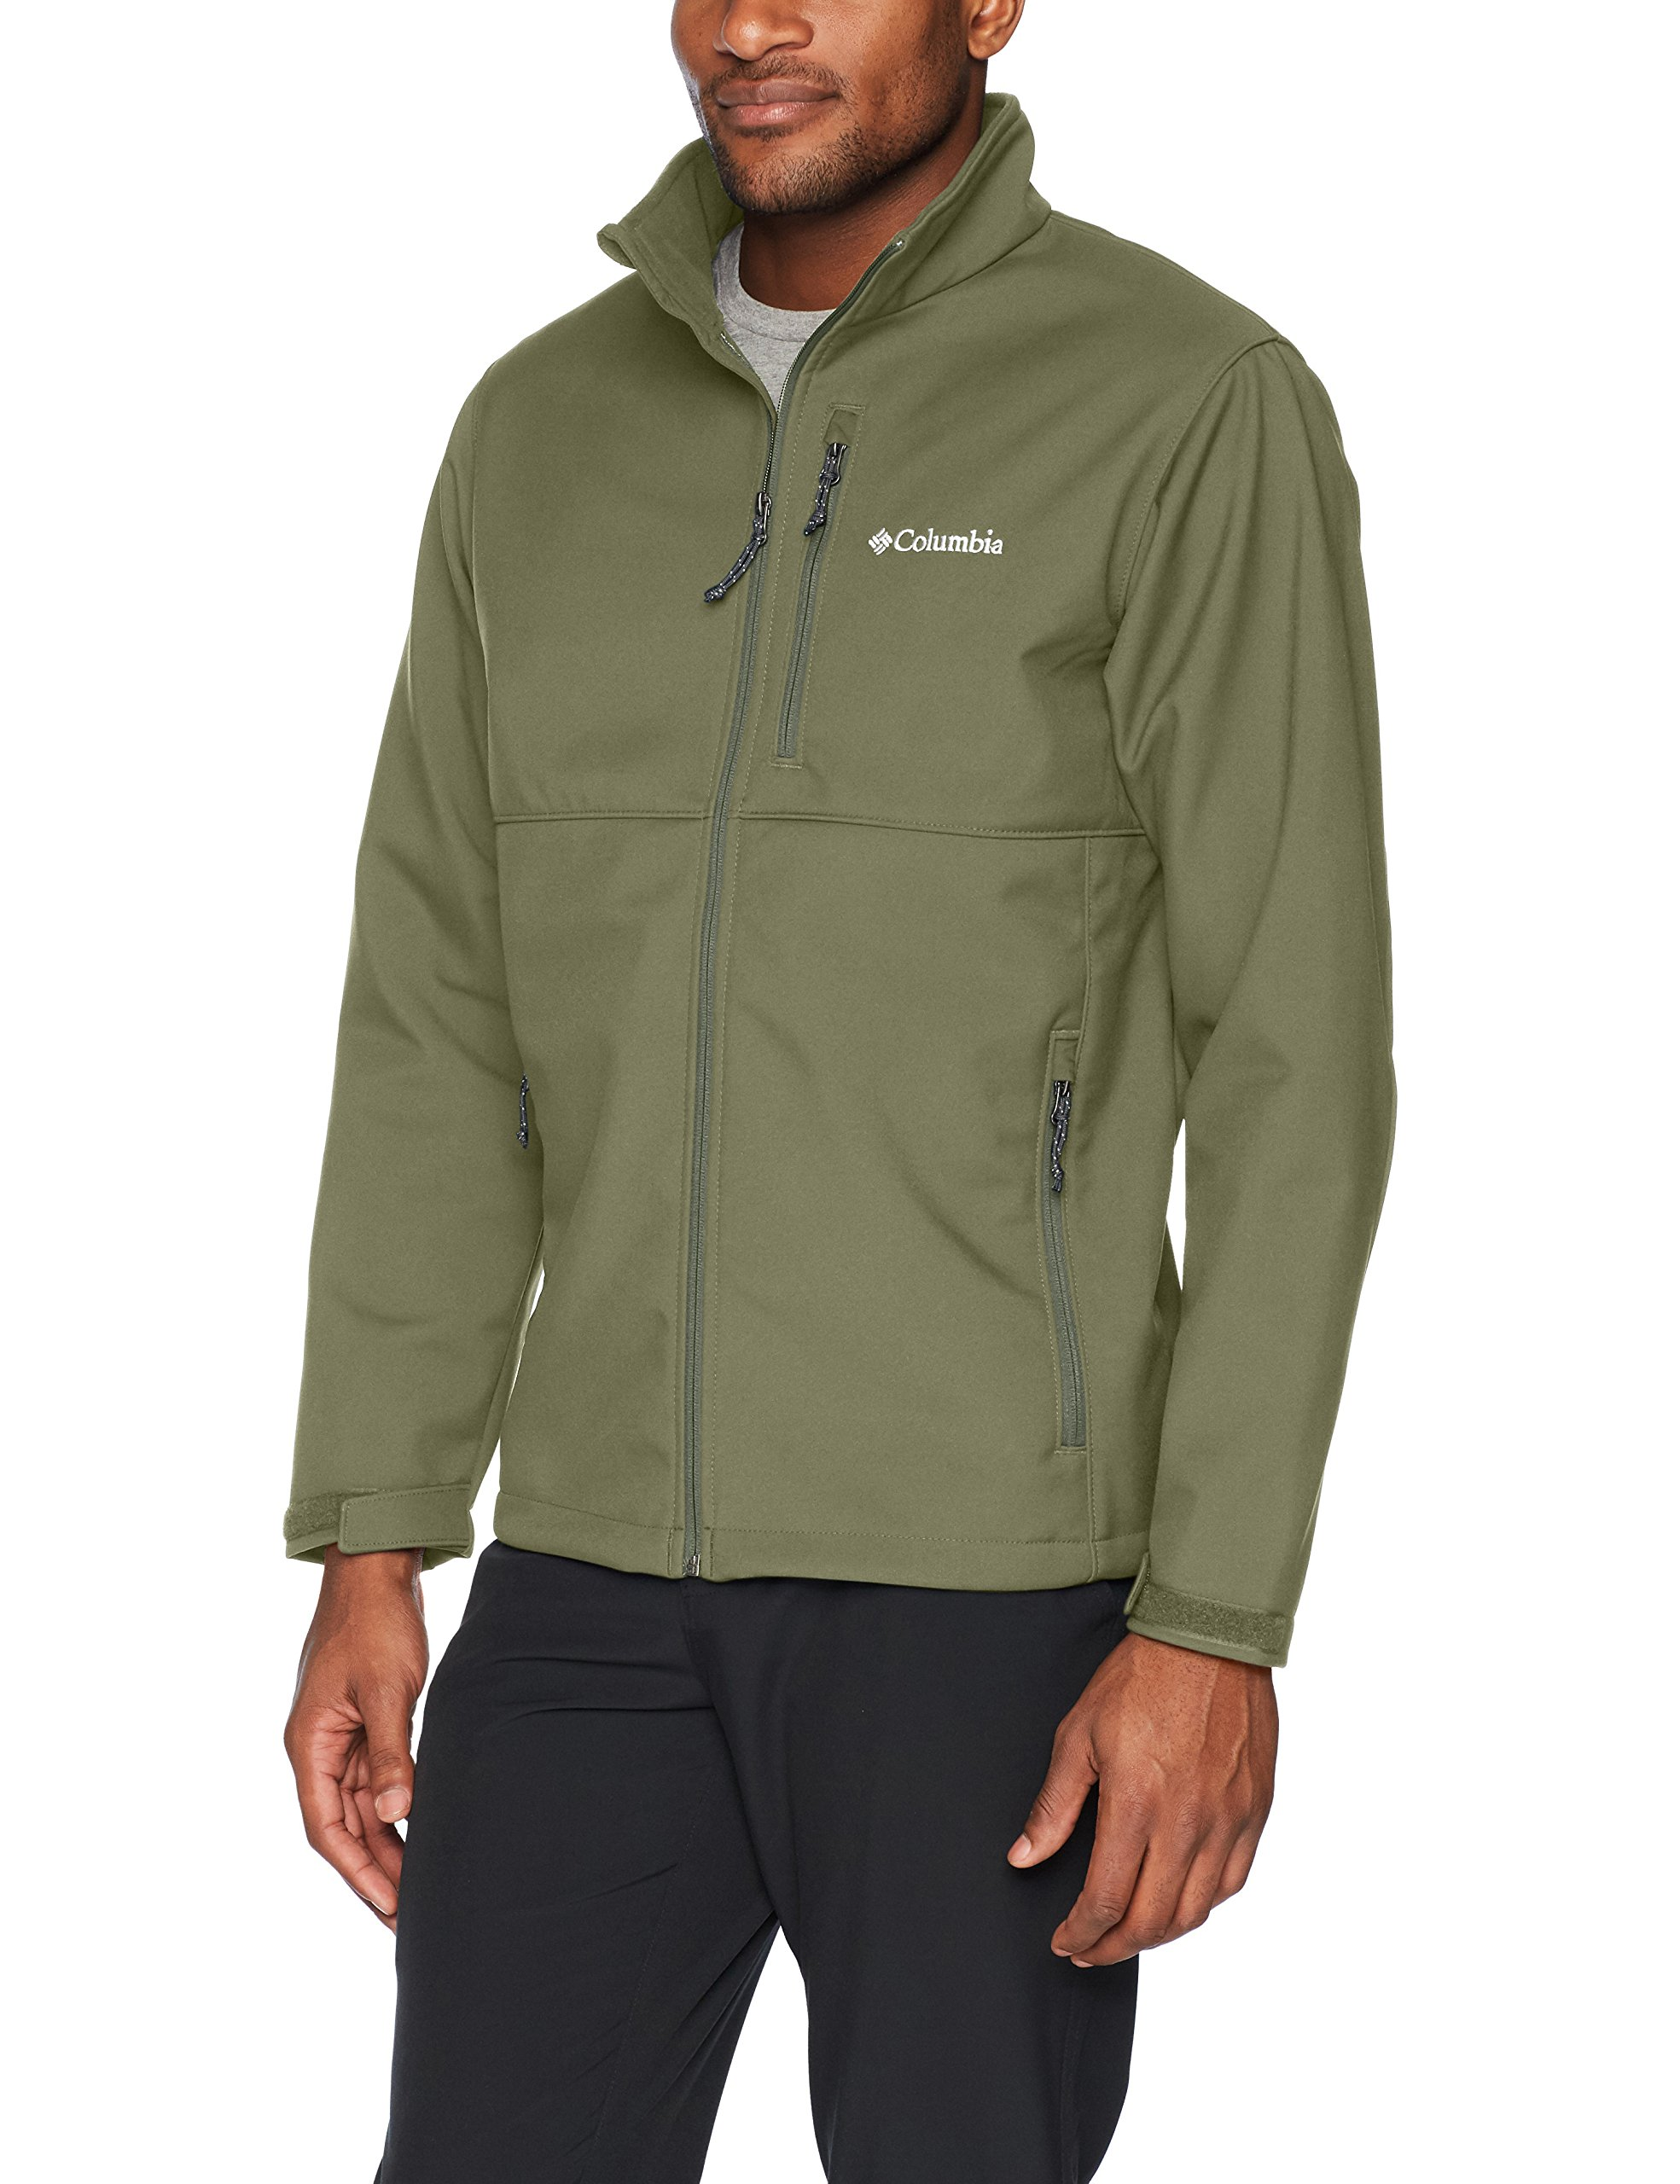 Columbia Men's Ascender Softshell Jacket, Water & Wind Resistant, Mosstone XXL,